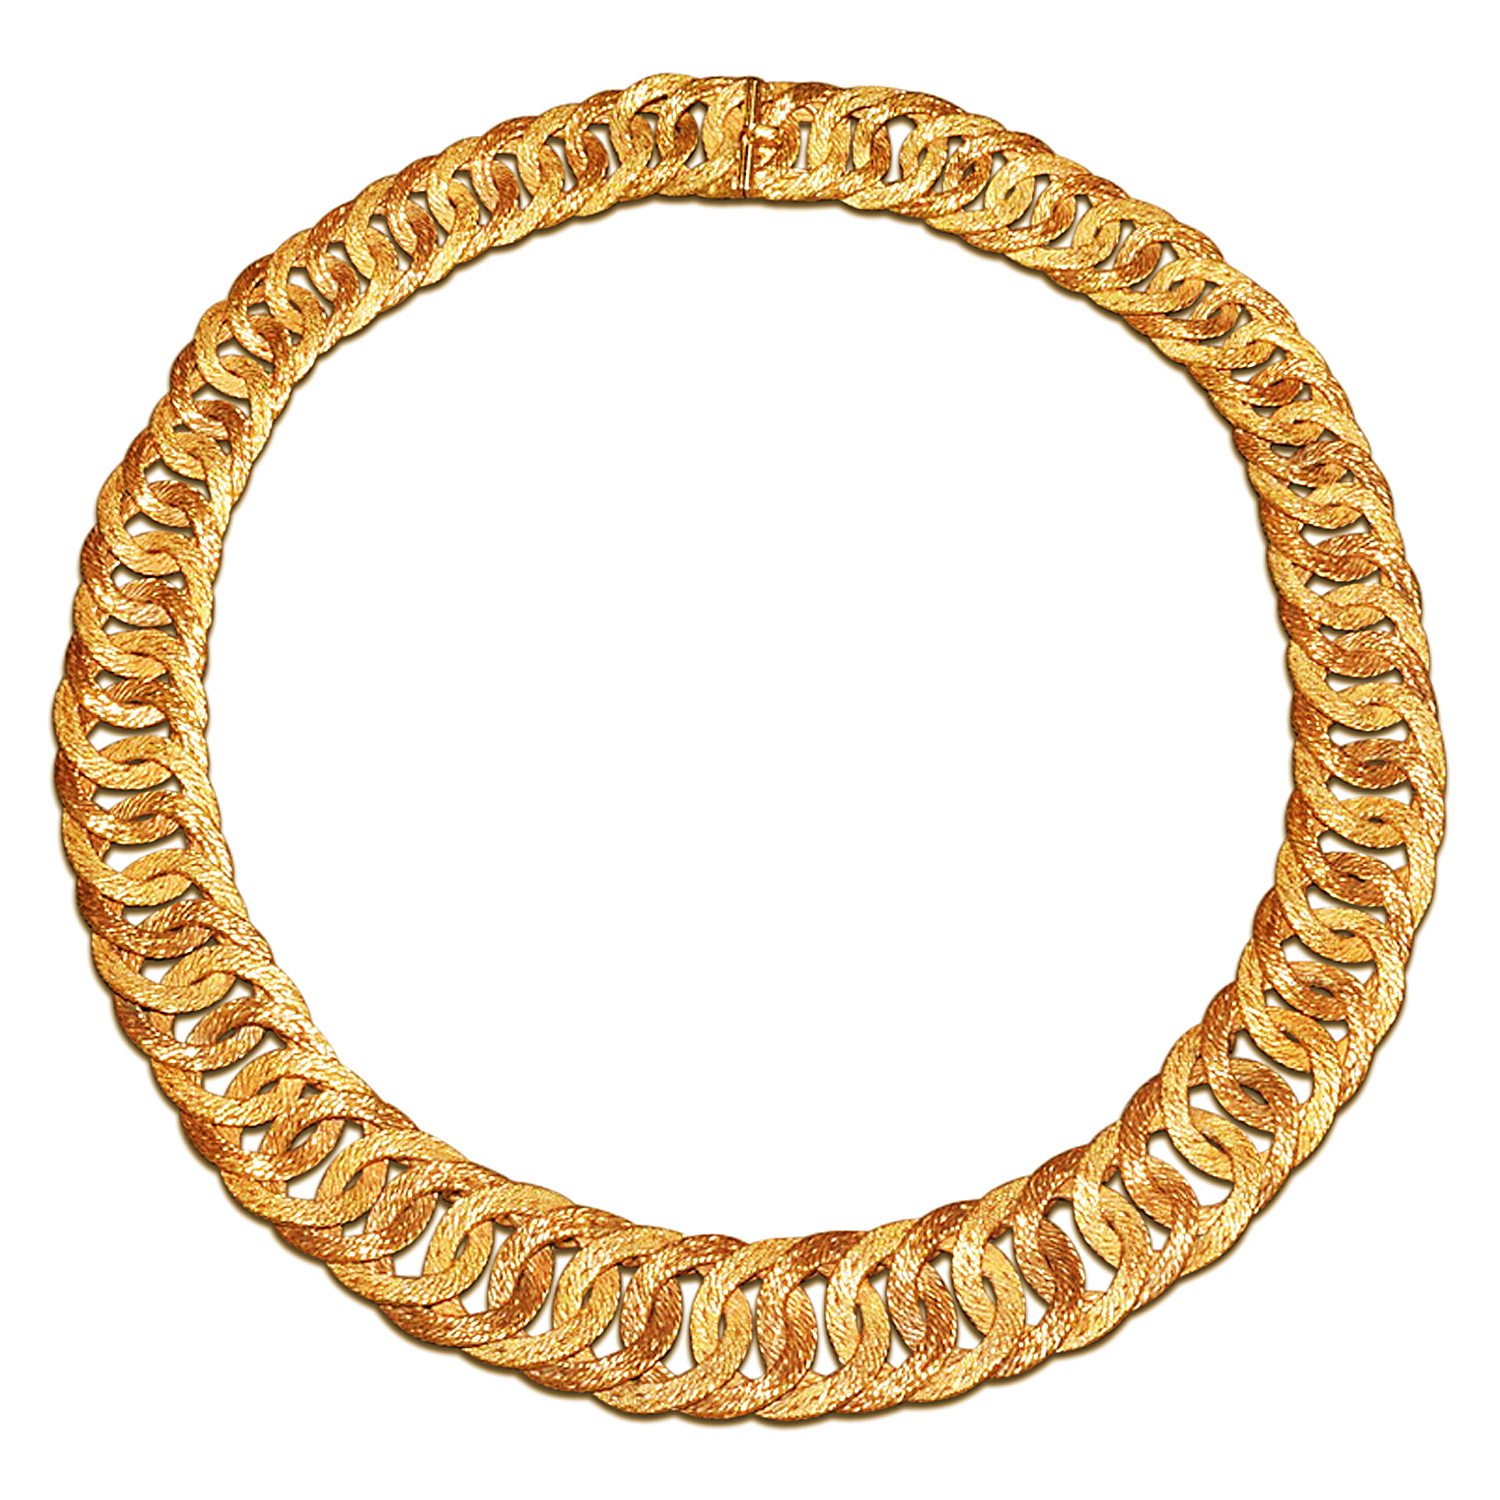 18K Yellow Gold Textured Cable Link Necklace by Georges L'Enfant for Hermès, Serial FL41570